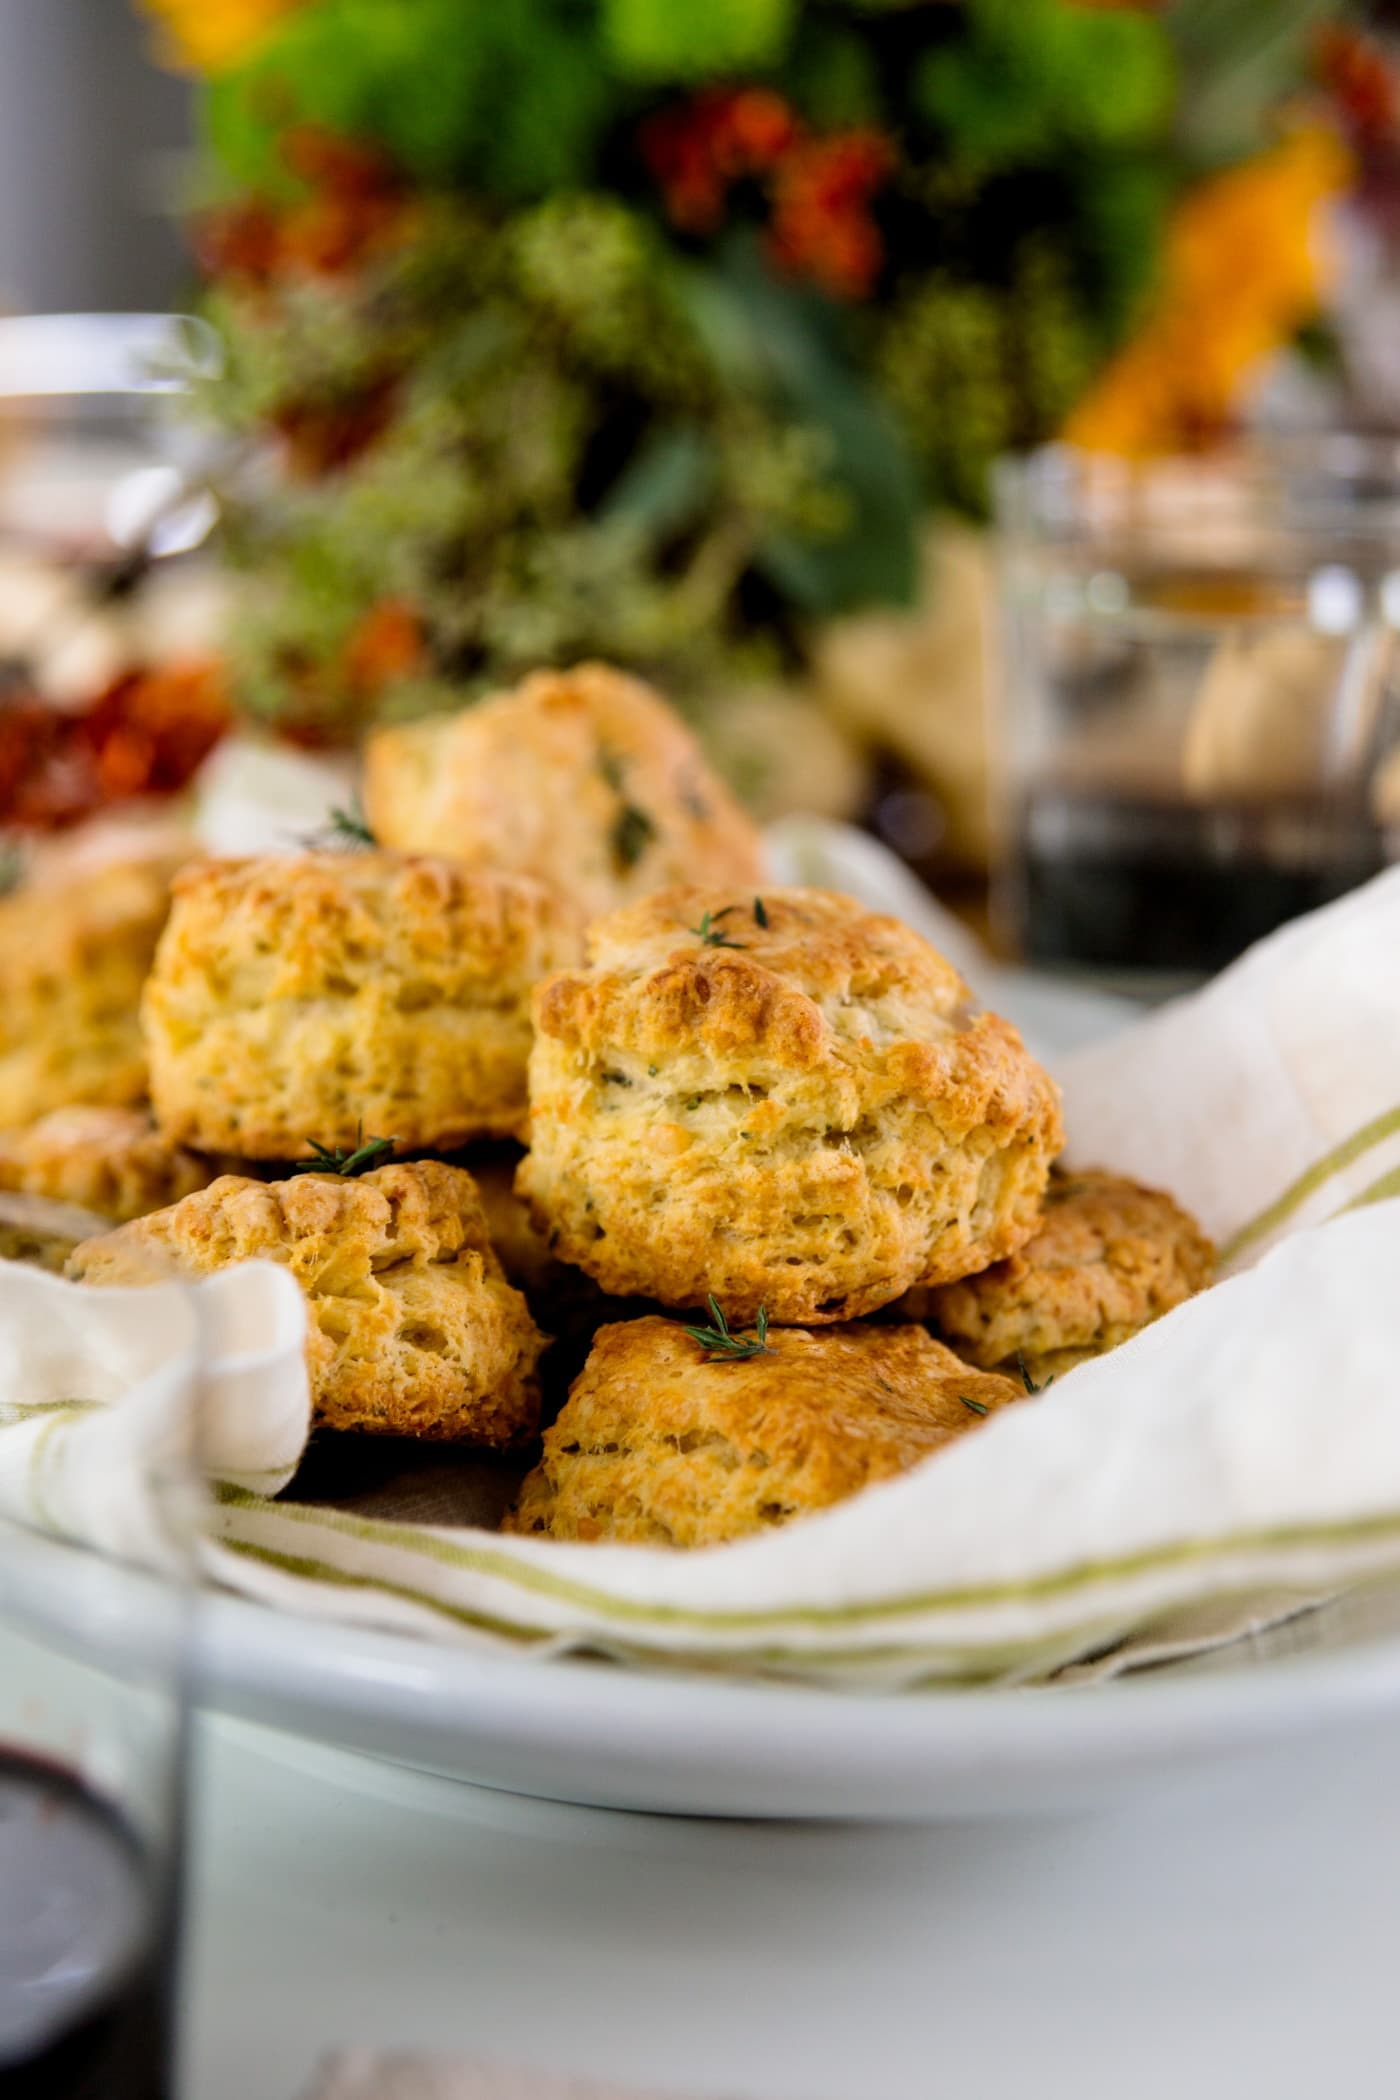 Herb cheese biscuits sitting on white and green linen in white bowl with flowers in background and glass in foreground all on white surface